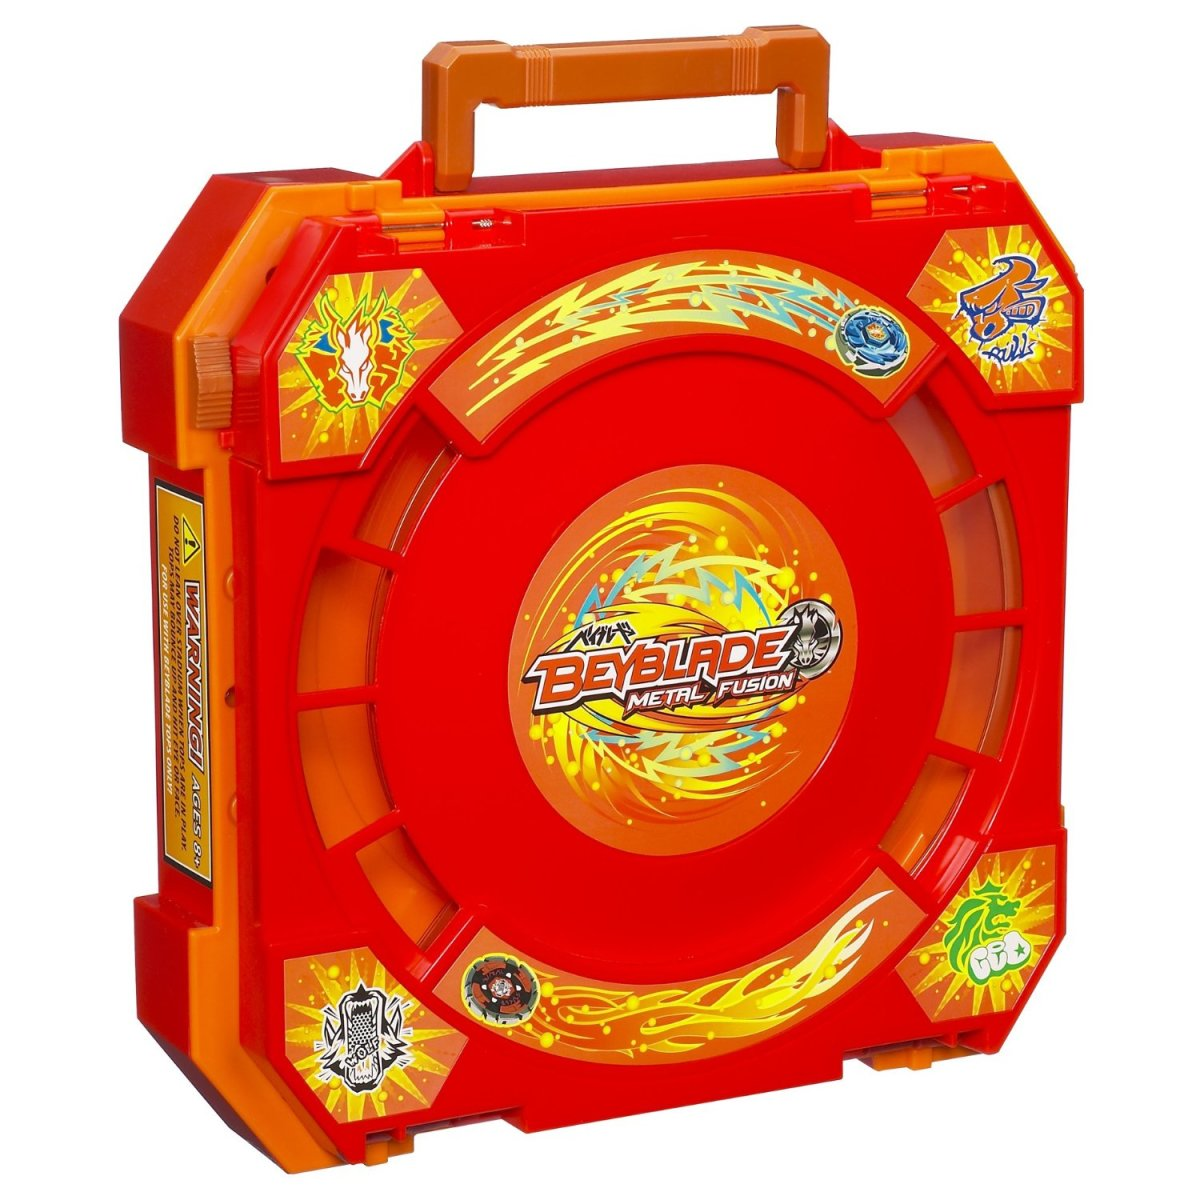 Combination Beyblade stadium and carrying case.